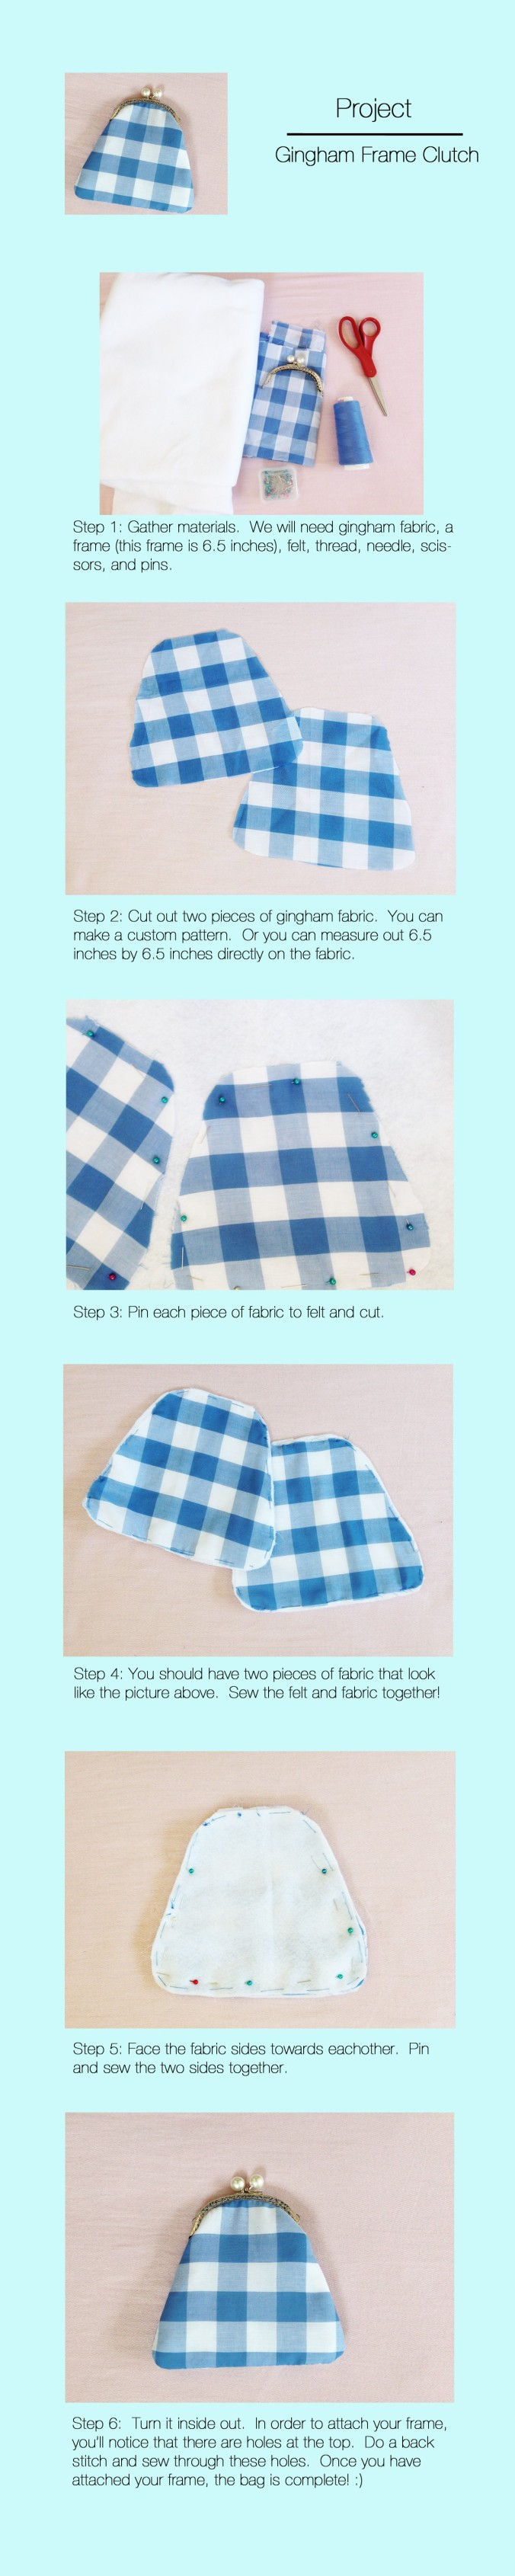 Gingham Frame Clutch